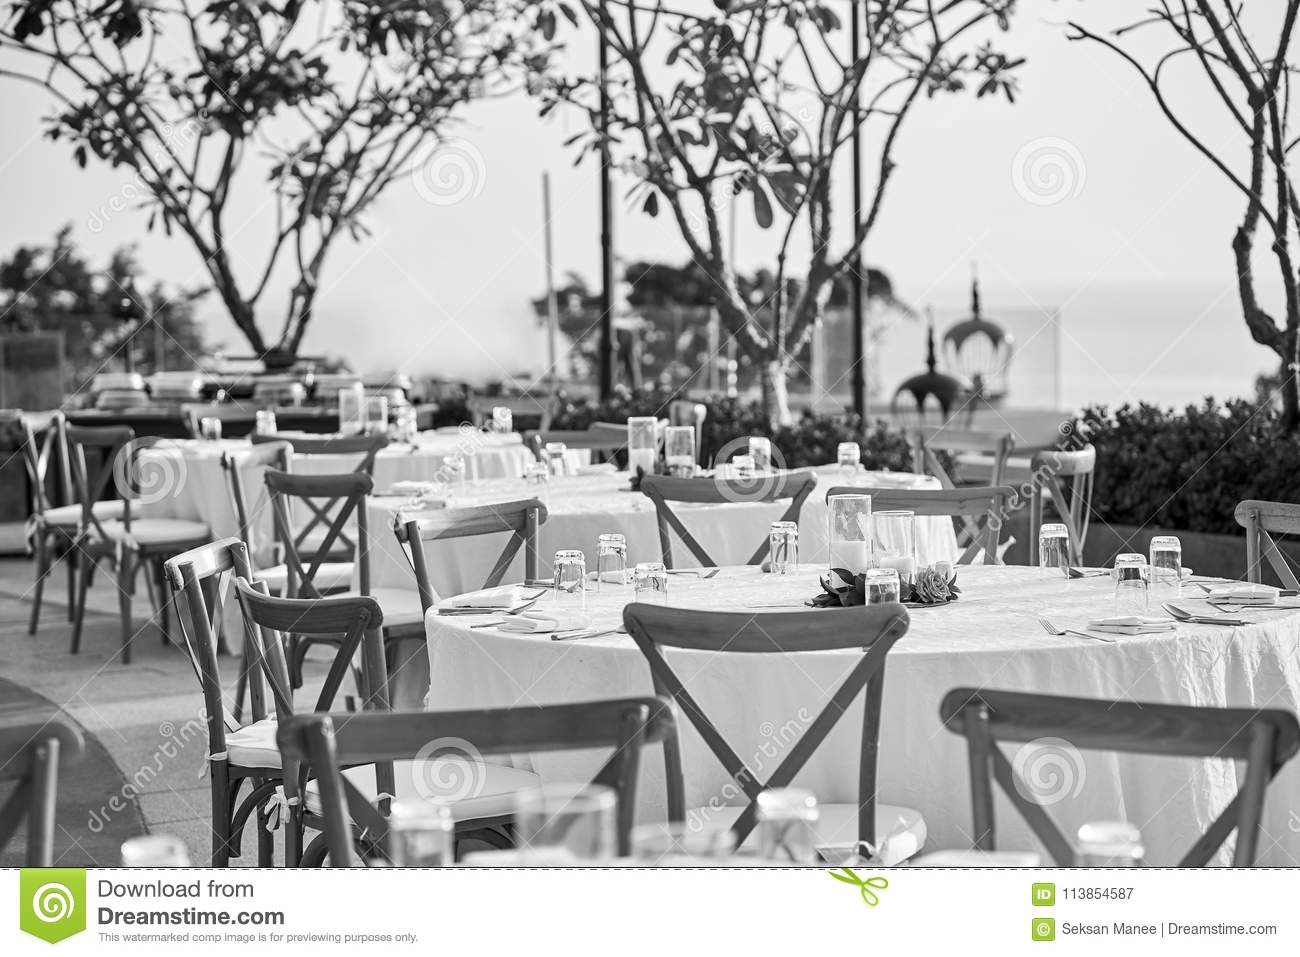 Stupendous Wedding Reception Dinner Table Setting With Folding Lawn Inzonedesignstudio Interior Chair Design Inzonedesignstudiocom